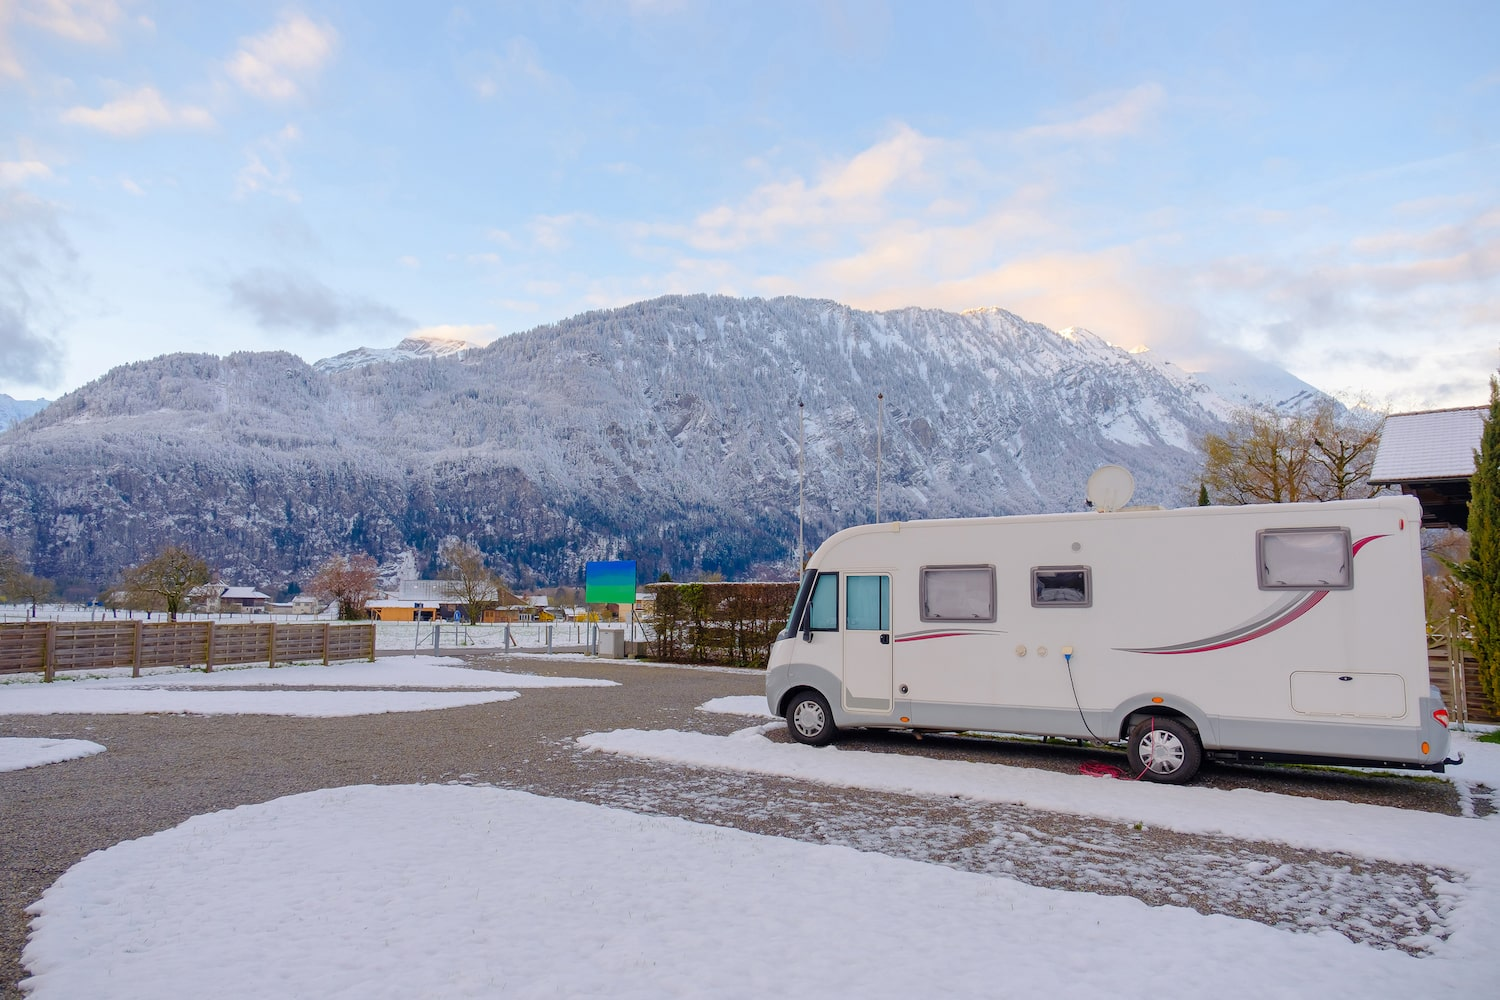 Motorhome car parking in camping in snow falling day.